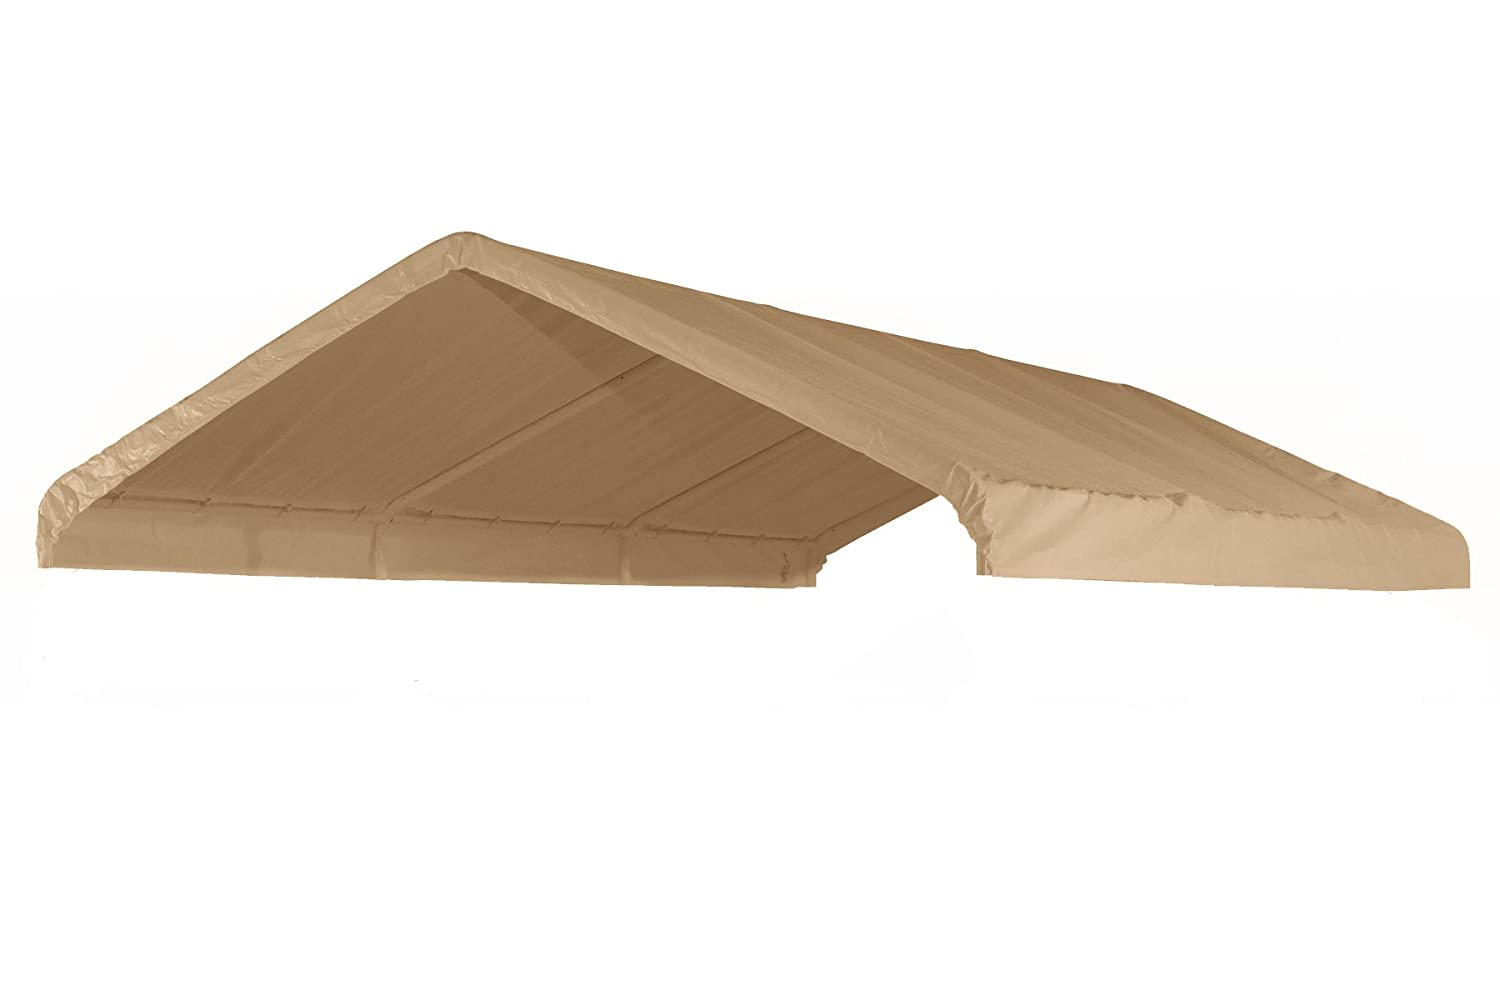 Amazon.com 12u0027 X 20u0027 Canopy Replacement Cover (Tan) - For Frames 10u0027 W X 20u0027 L (See Diagram) Garden u0026 Outdoor  sc 1 st  Amazon.com & Amazon.com: 12u0027 X 20u0027 Canopy Replacement Cover (Tan) - For Frames ...